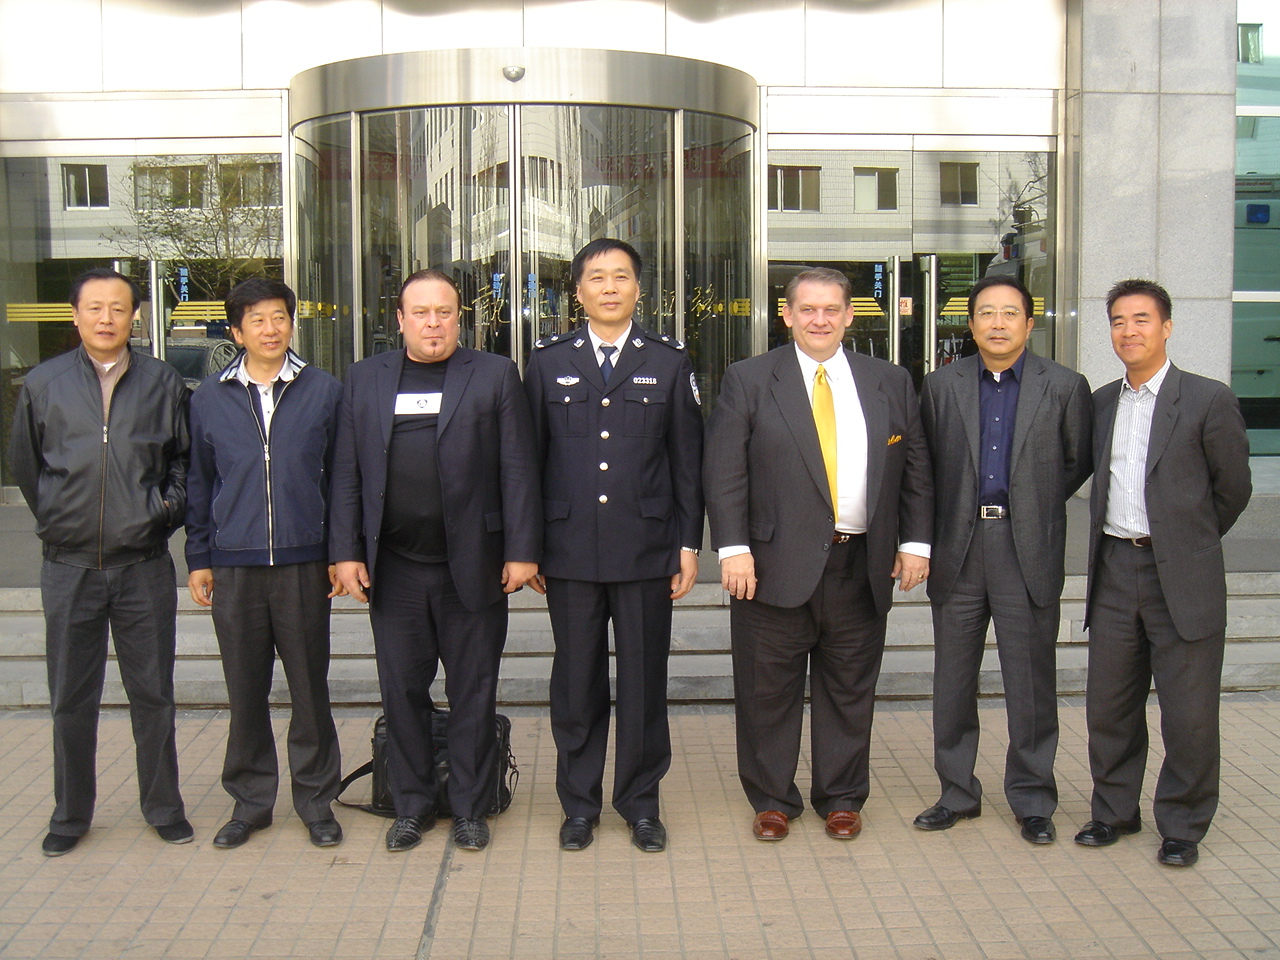 Steve Greschner (third from left), David Hendershott (third from right) and Gang Chen (right) during a tour of the Beijing Security Bureau in fall 2006.(Image courtesy Steve Greschner)